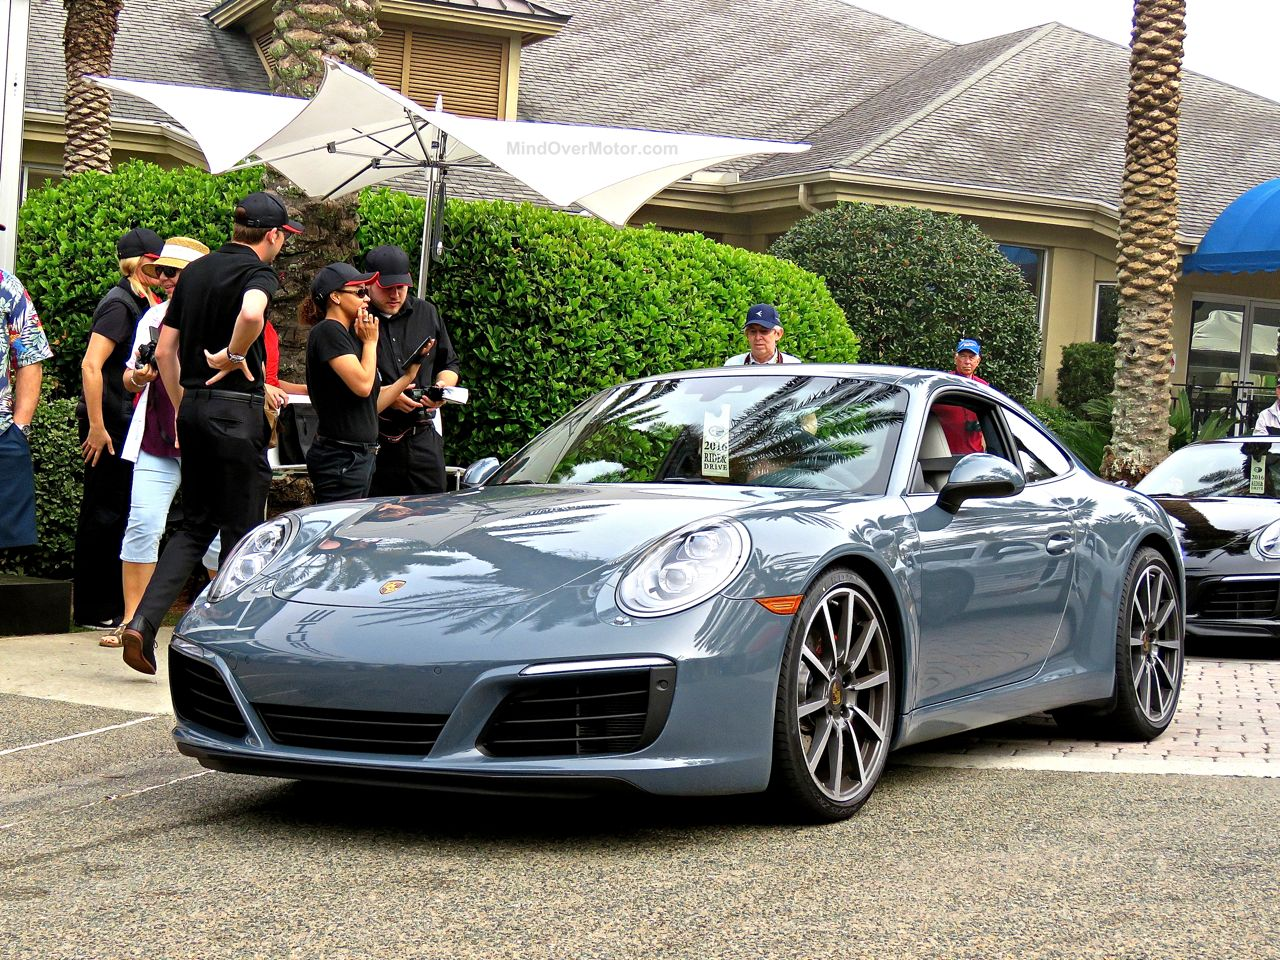 Porsche 9912 carrera s review do turbos make a better 911 mind porsche 9912 carrera s turbo review 7 publicscrutiny Choice Image